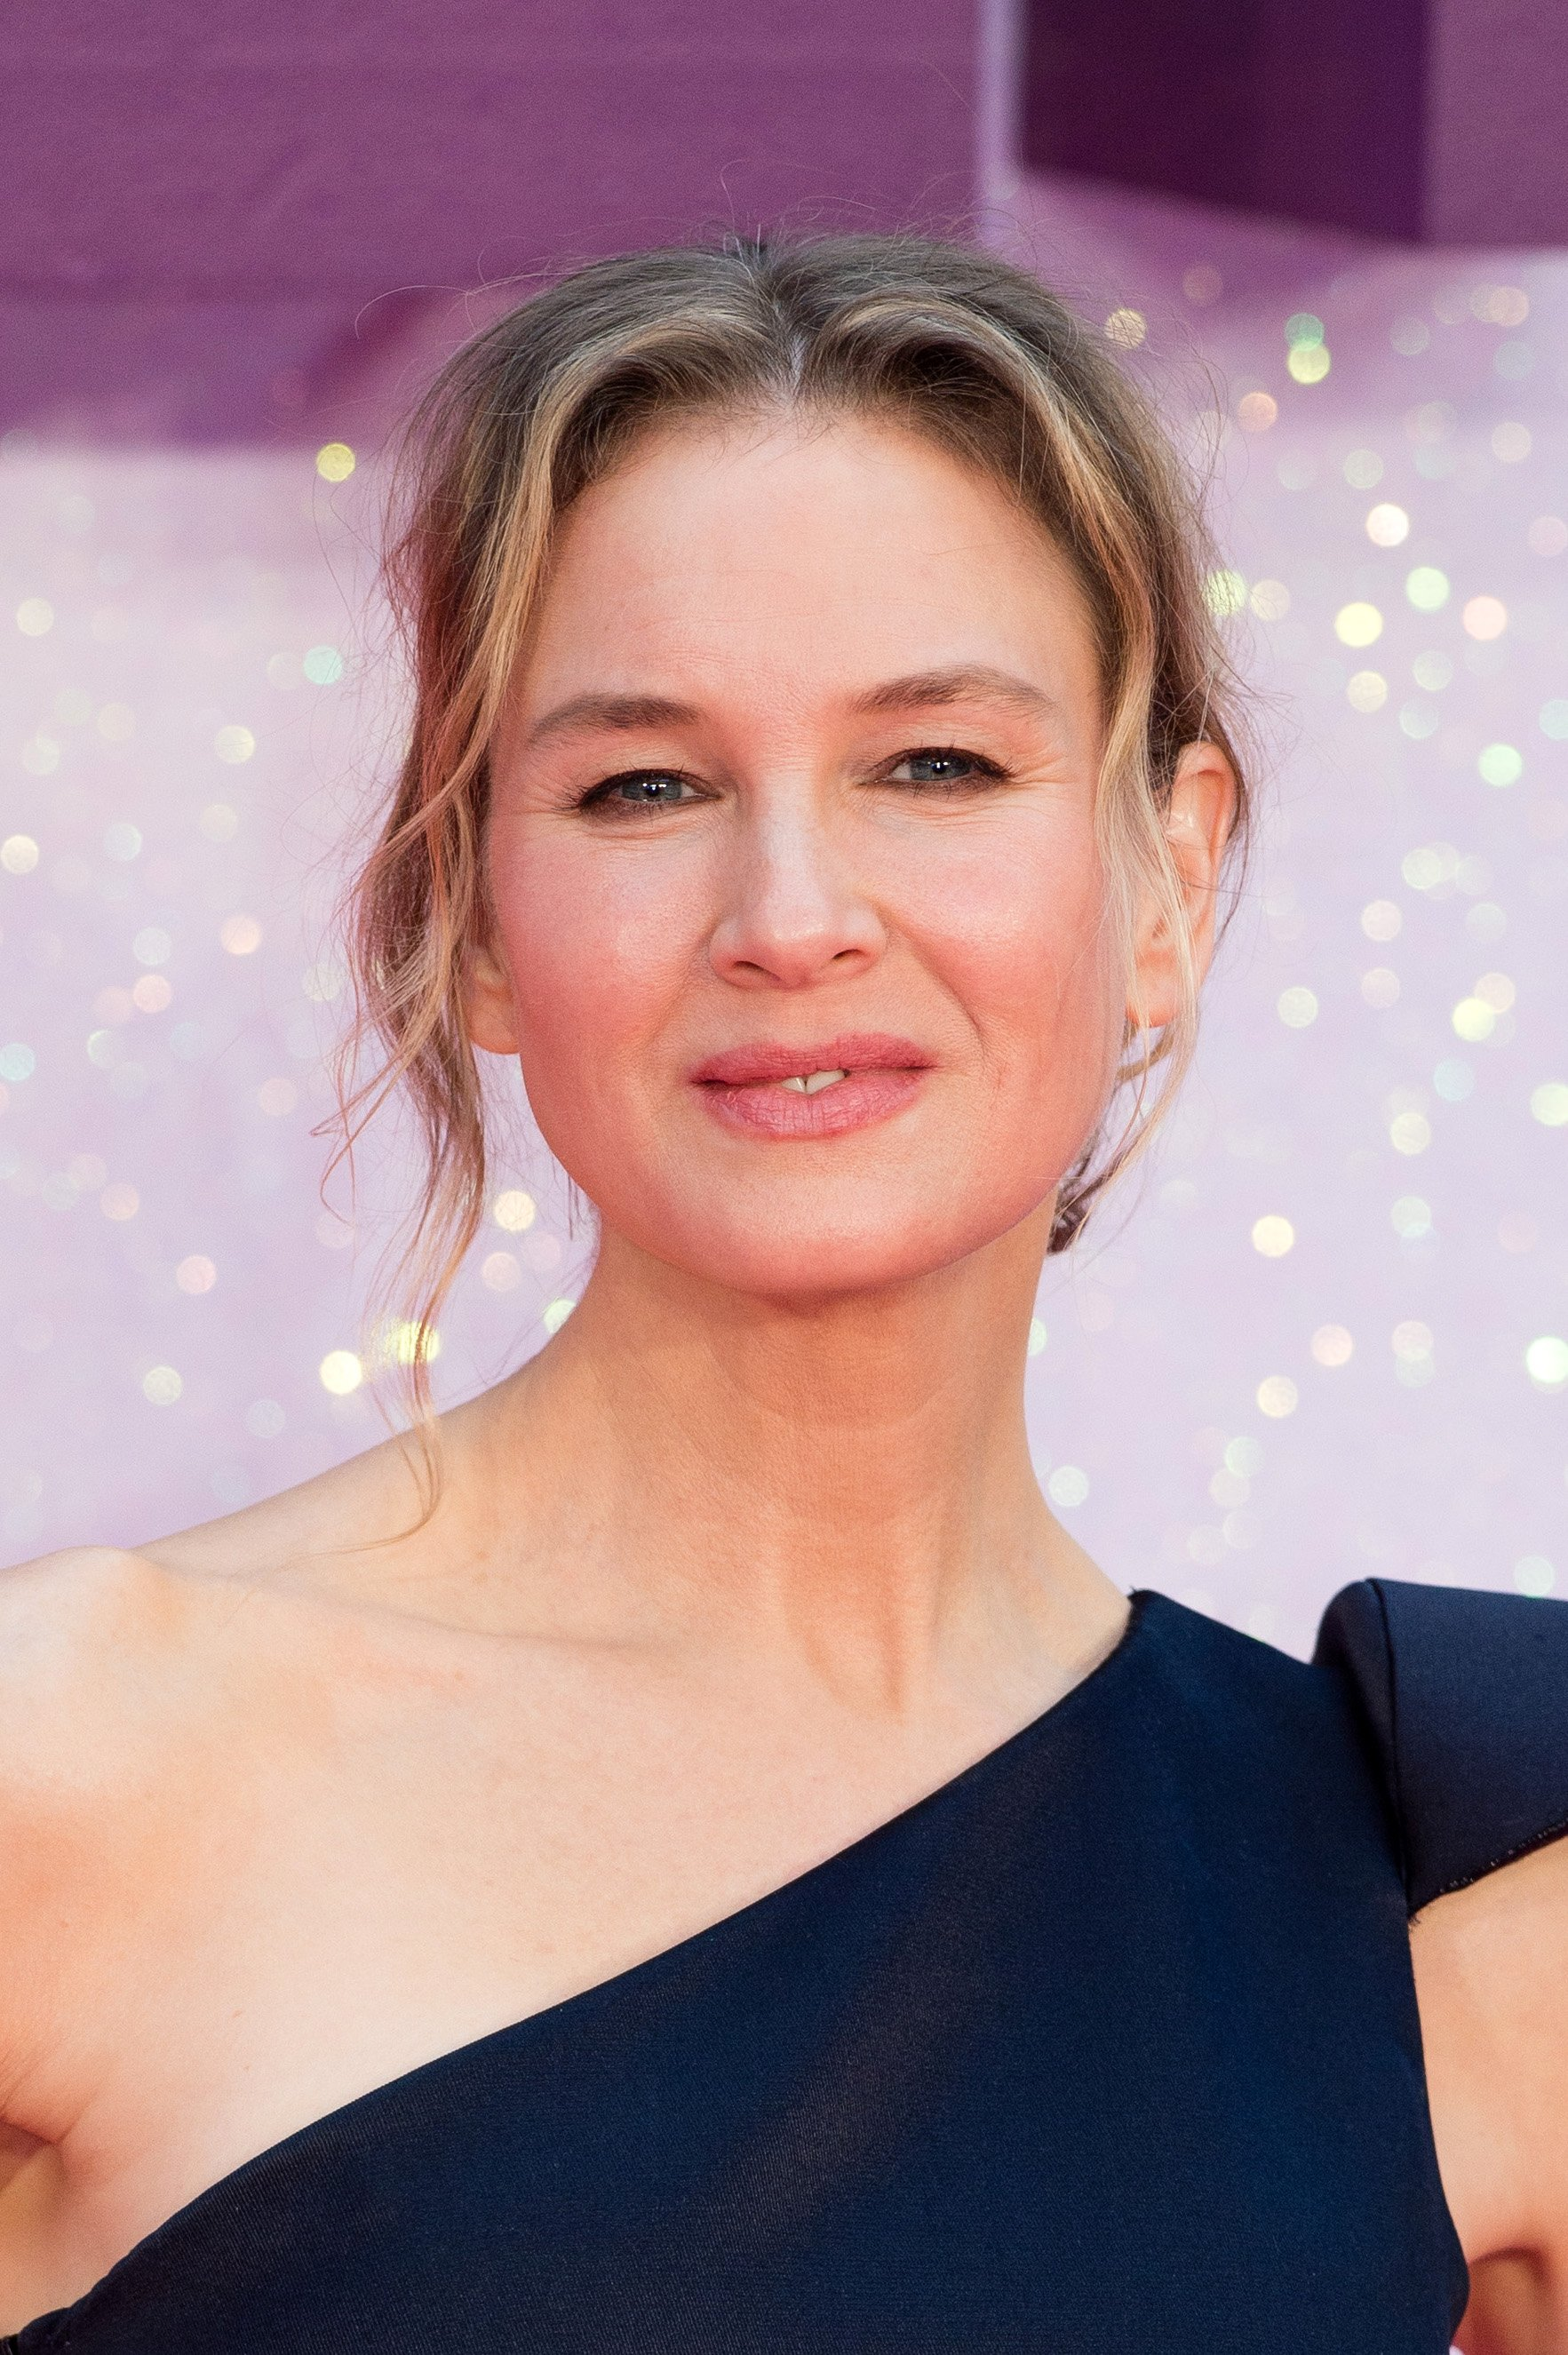 """Renee Zellweger arrives for the World premiere of """"Bridget Jones's Baby"""" at Odeon Leicester Square on September 5, 2016 